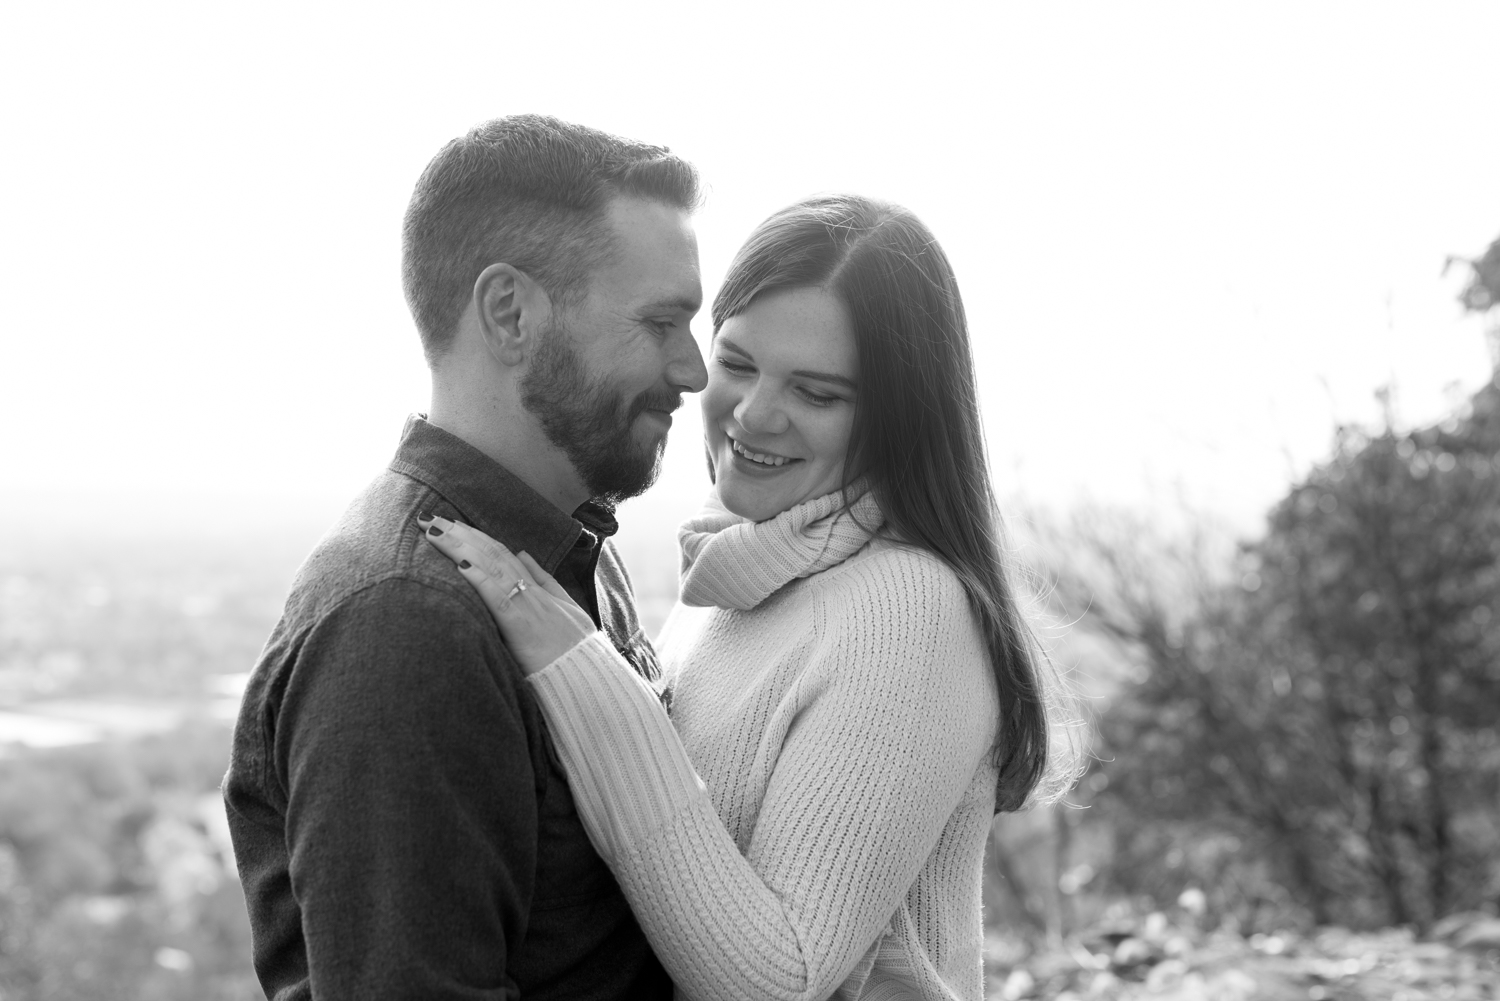 Amy+Brian- Garret Mountain Engagement Session- Fall Nature- Film Photography-New Jersey- Olivia Christina Photo-62.JPG